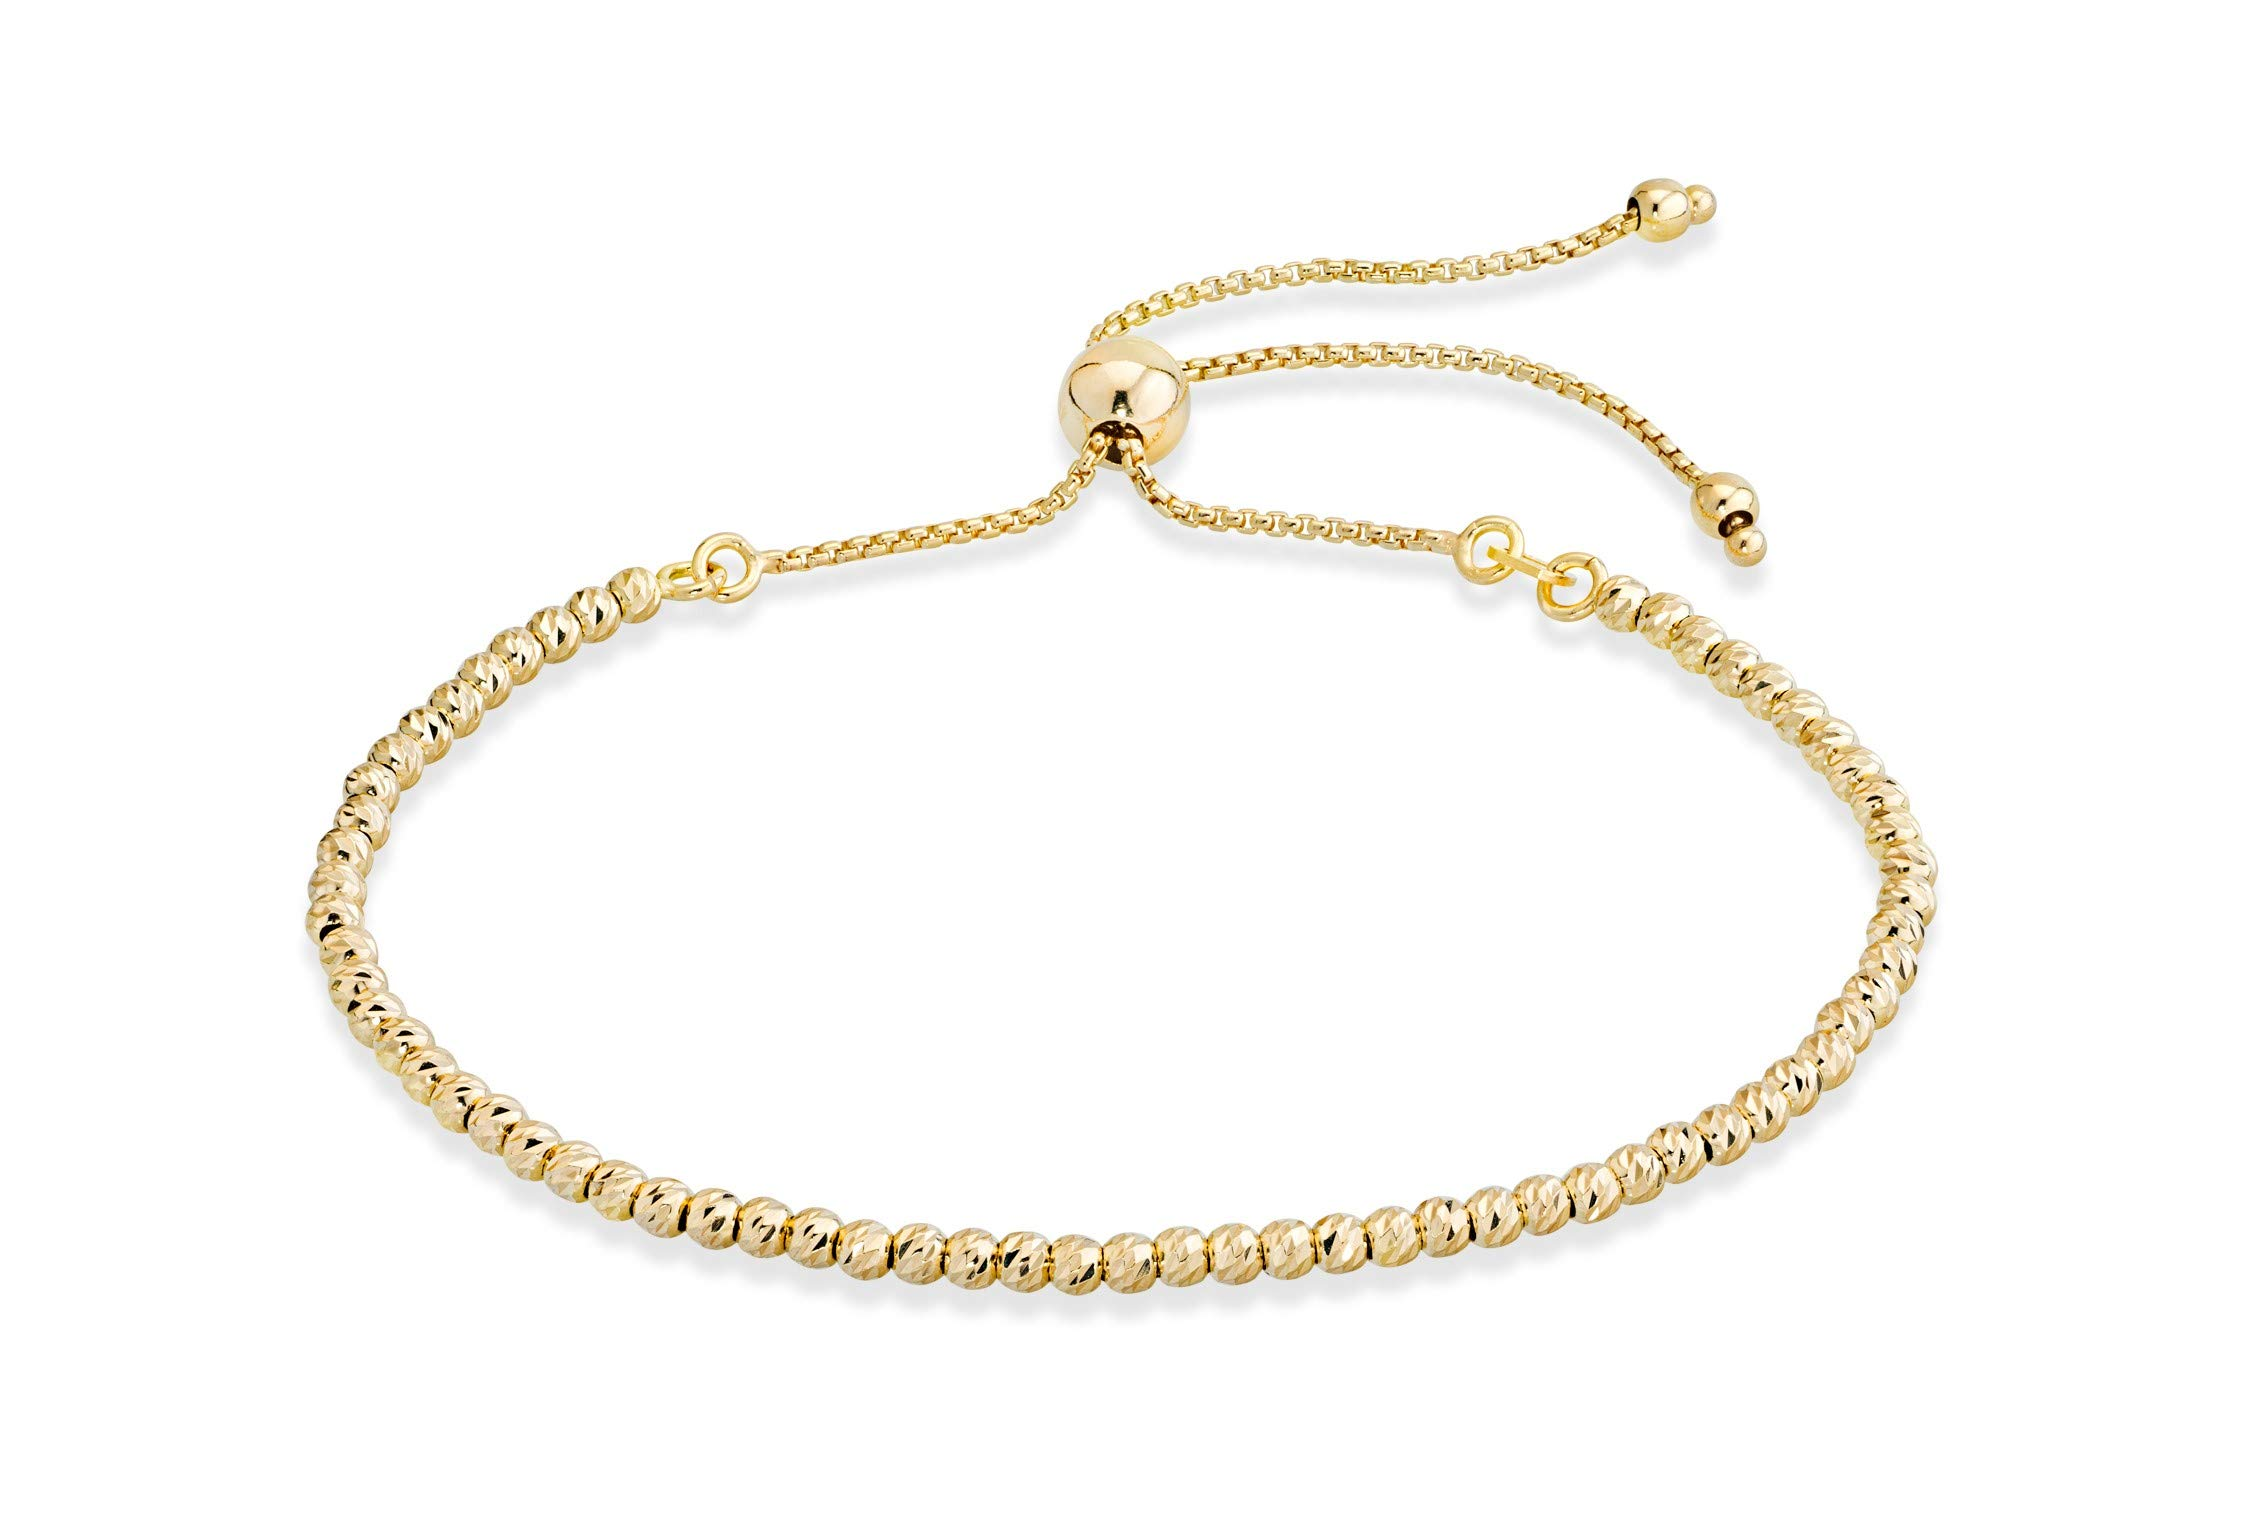 MiaBella 925 Sterling Silver Diamond-Cut Adjustable Bolo 2.5mm Bead Bracelet for Women, Handmade Italian Beaded Ball Chain Bracelet, Choice White or Yellow (Yellow-Gold-Plated-Silver) by MiaBella